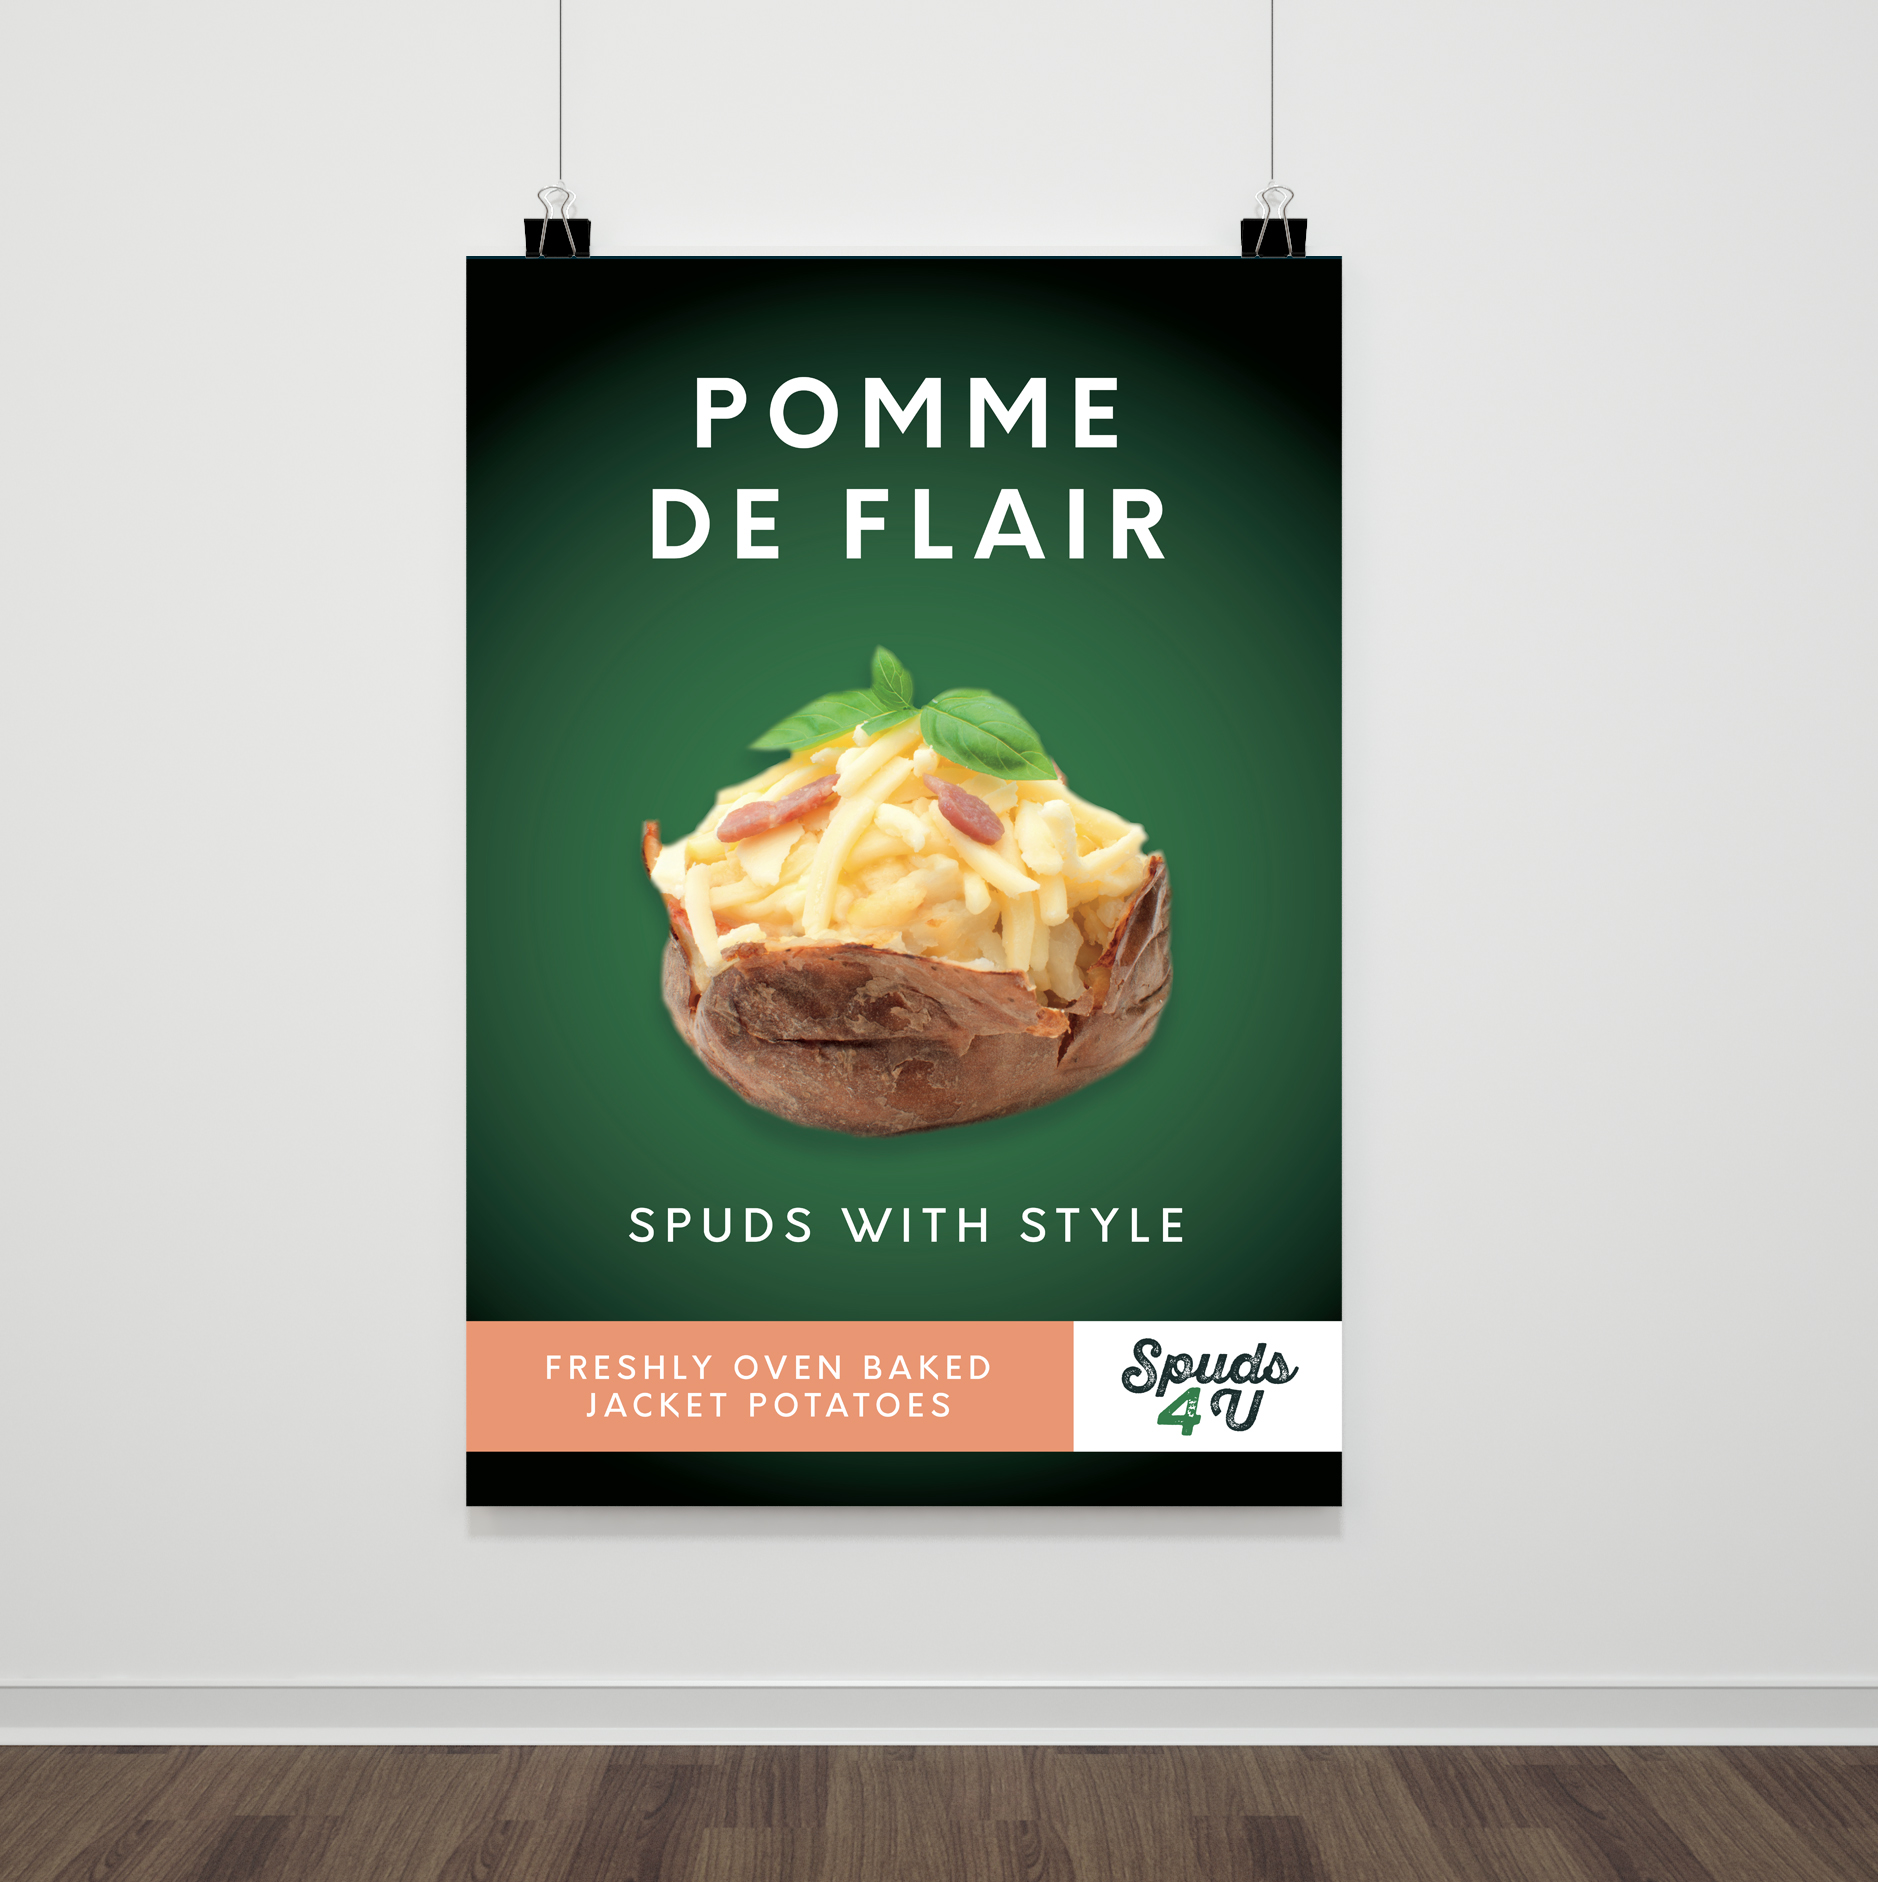 Baked potato outlet opening poster utilising a play on the french name for potato